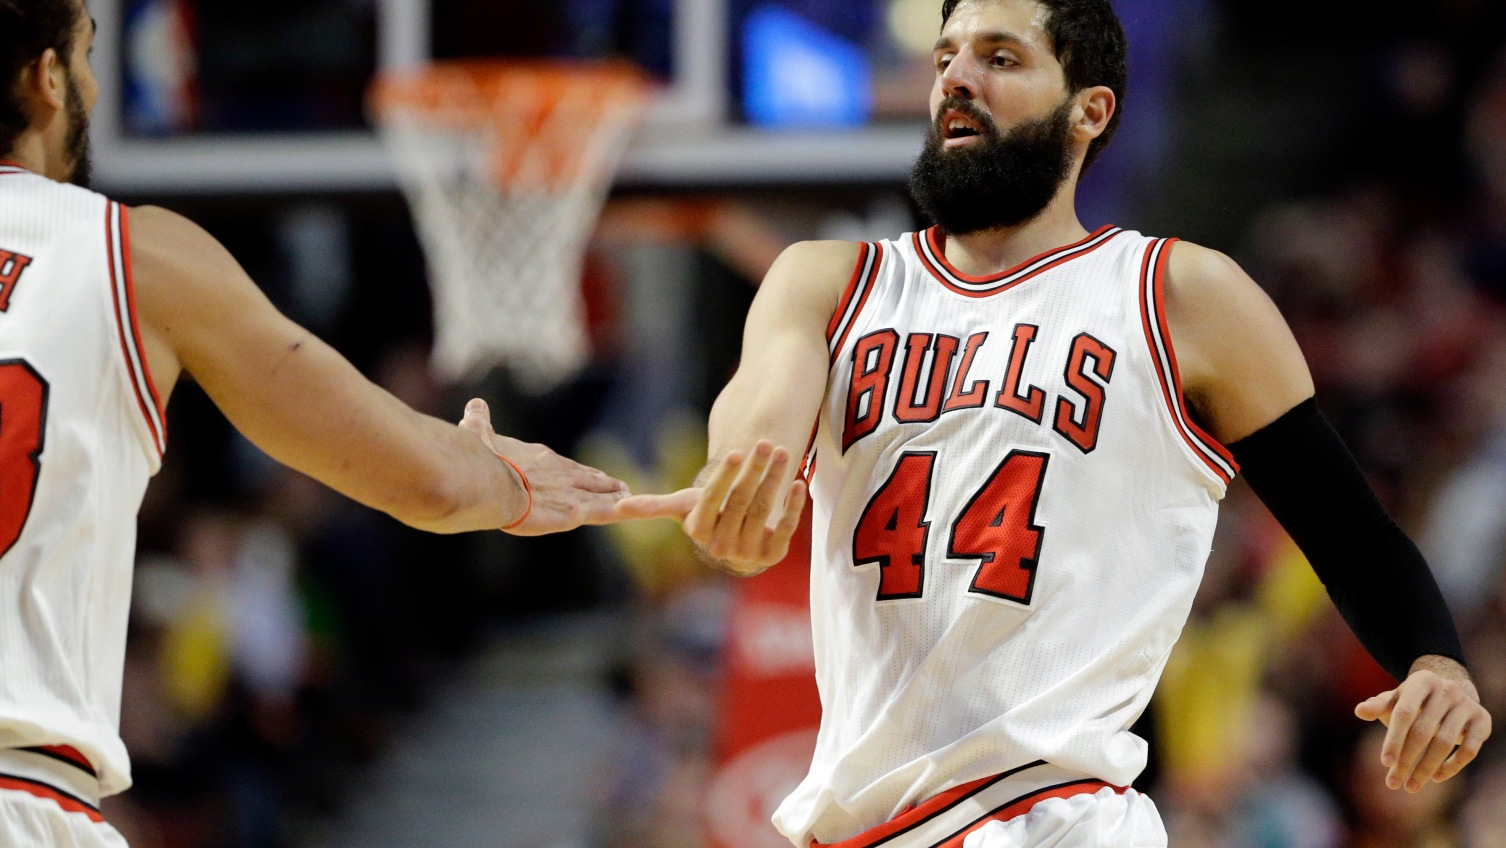 You have yet to see the best Nikola Mirotic, if you ask Nikola Mirotic